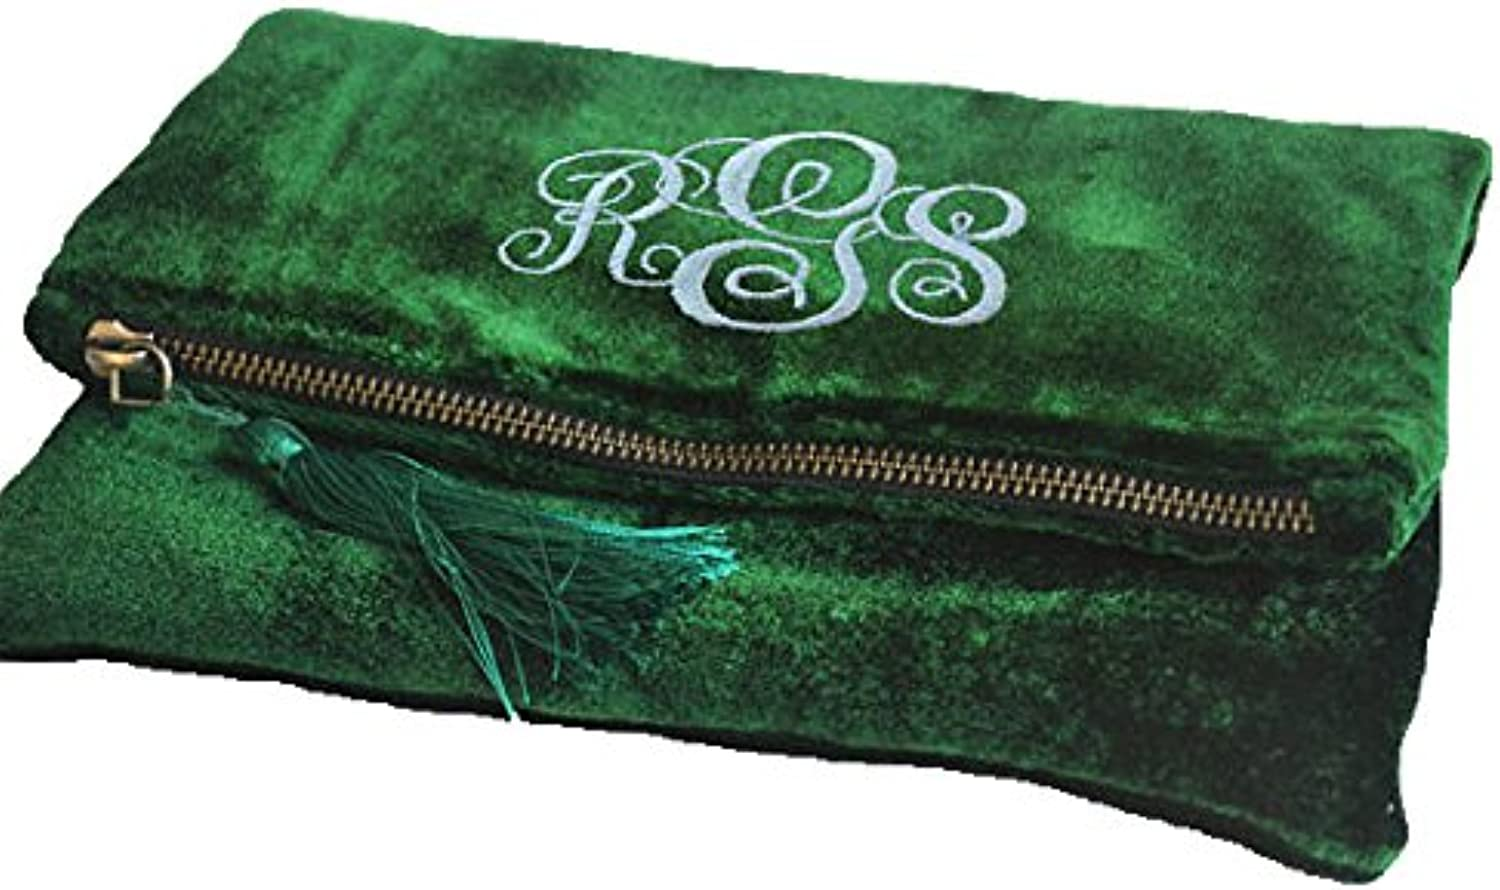 Cheers Handbags, Foldover Clutch, Emerald Green Fold Over Bag, Velvet Bag, Velvet Fold Over Pouch, Embroidered Bag